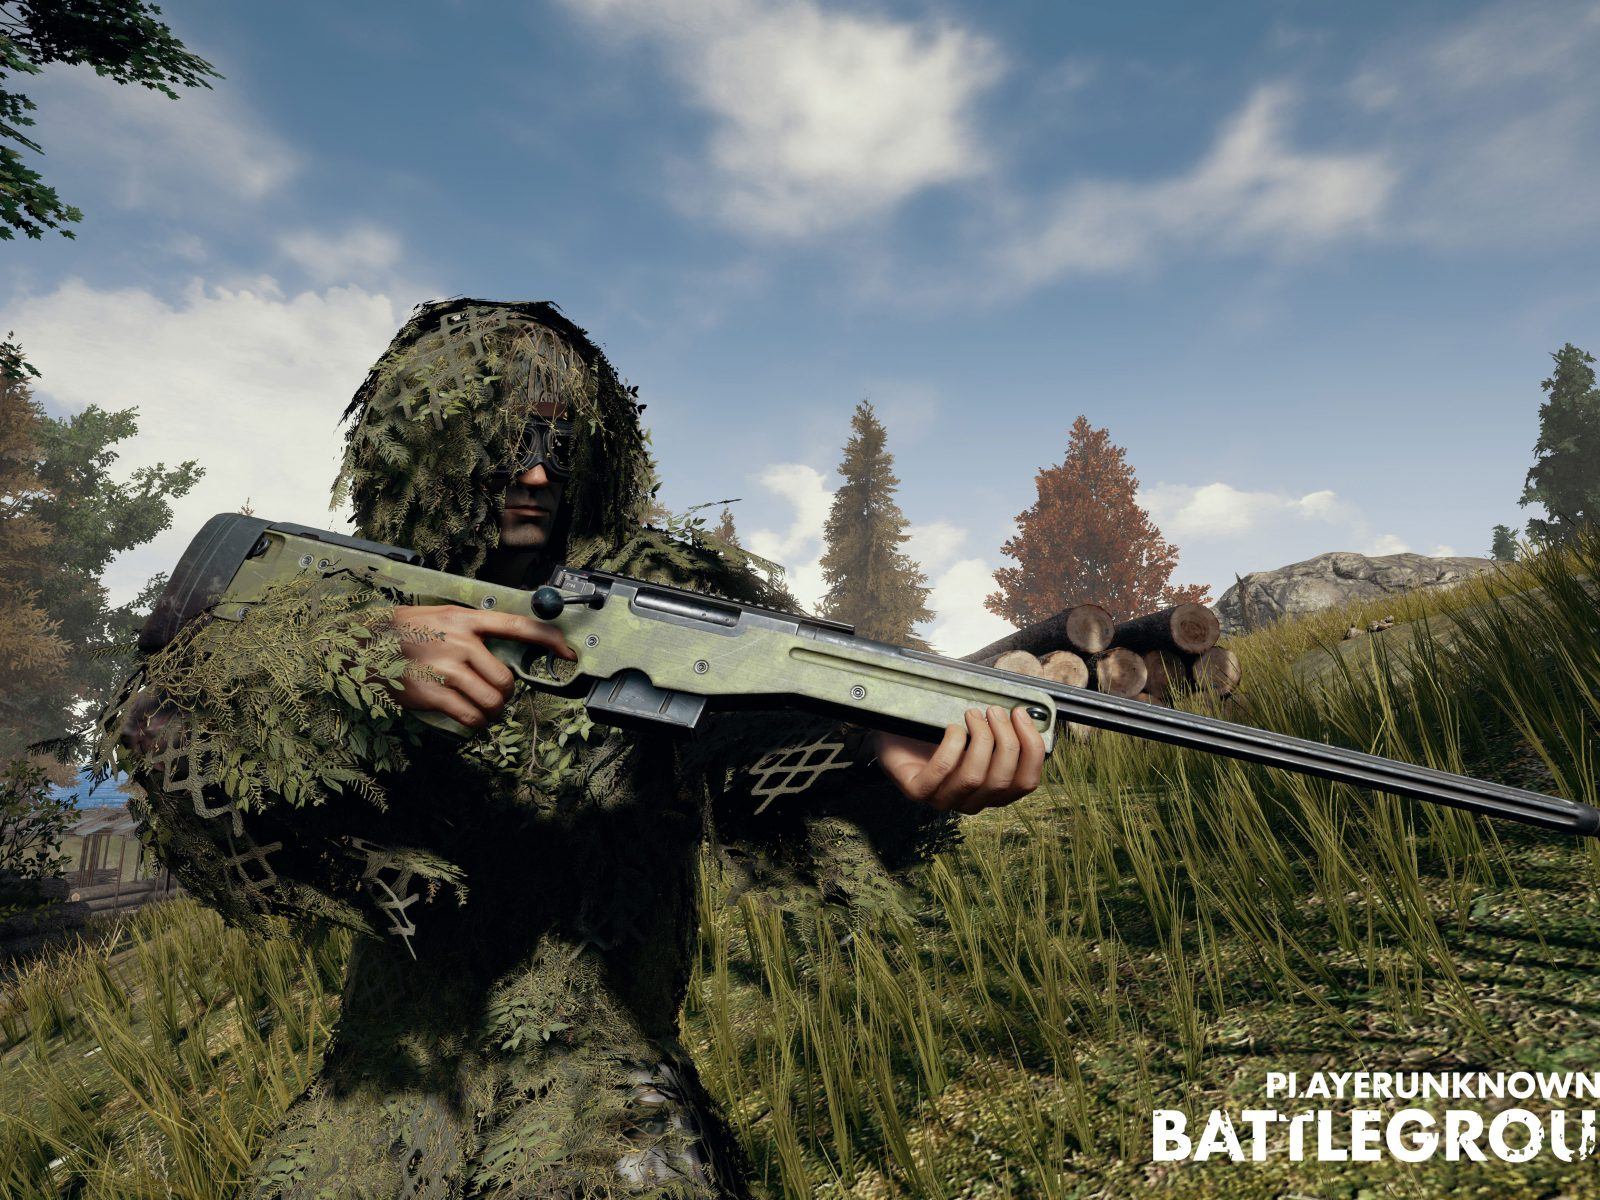 pubg photos hd full screen